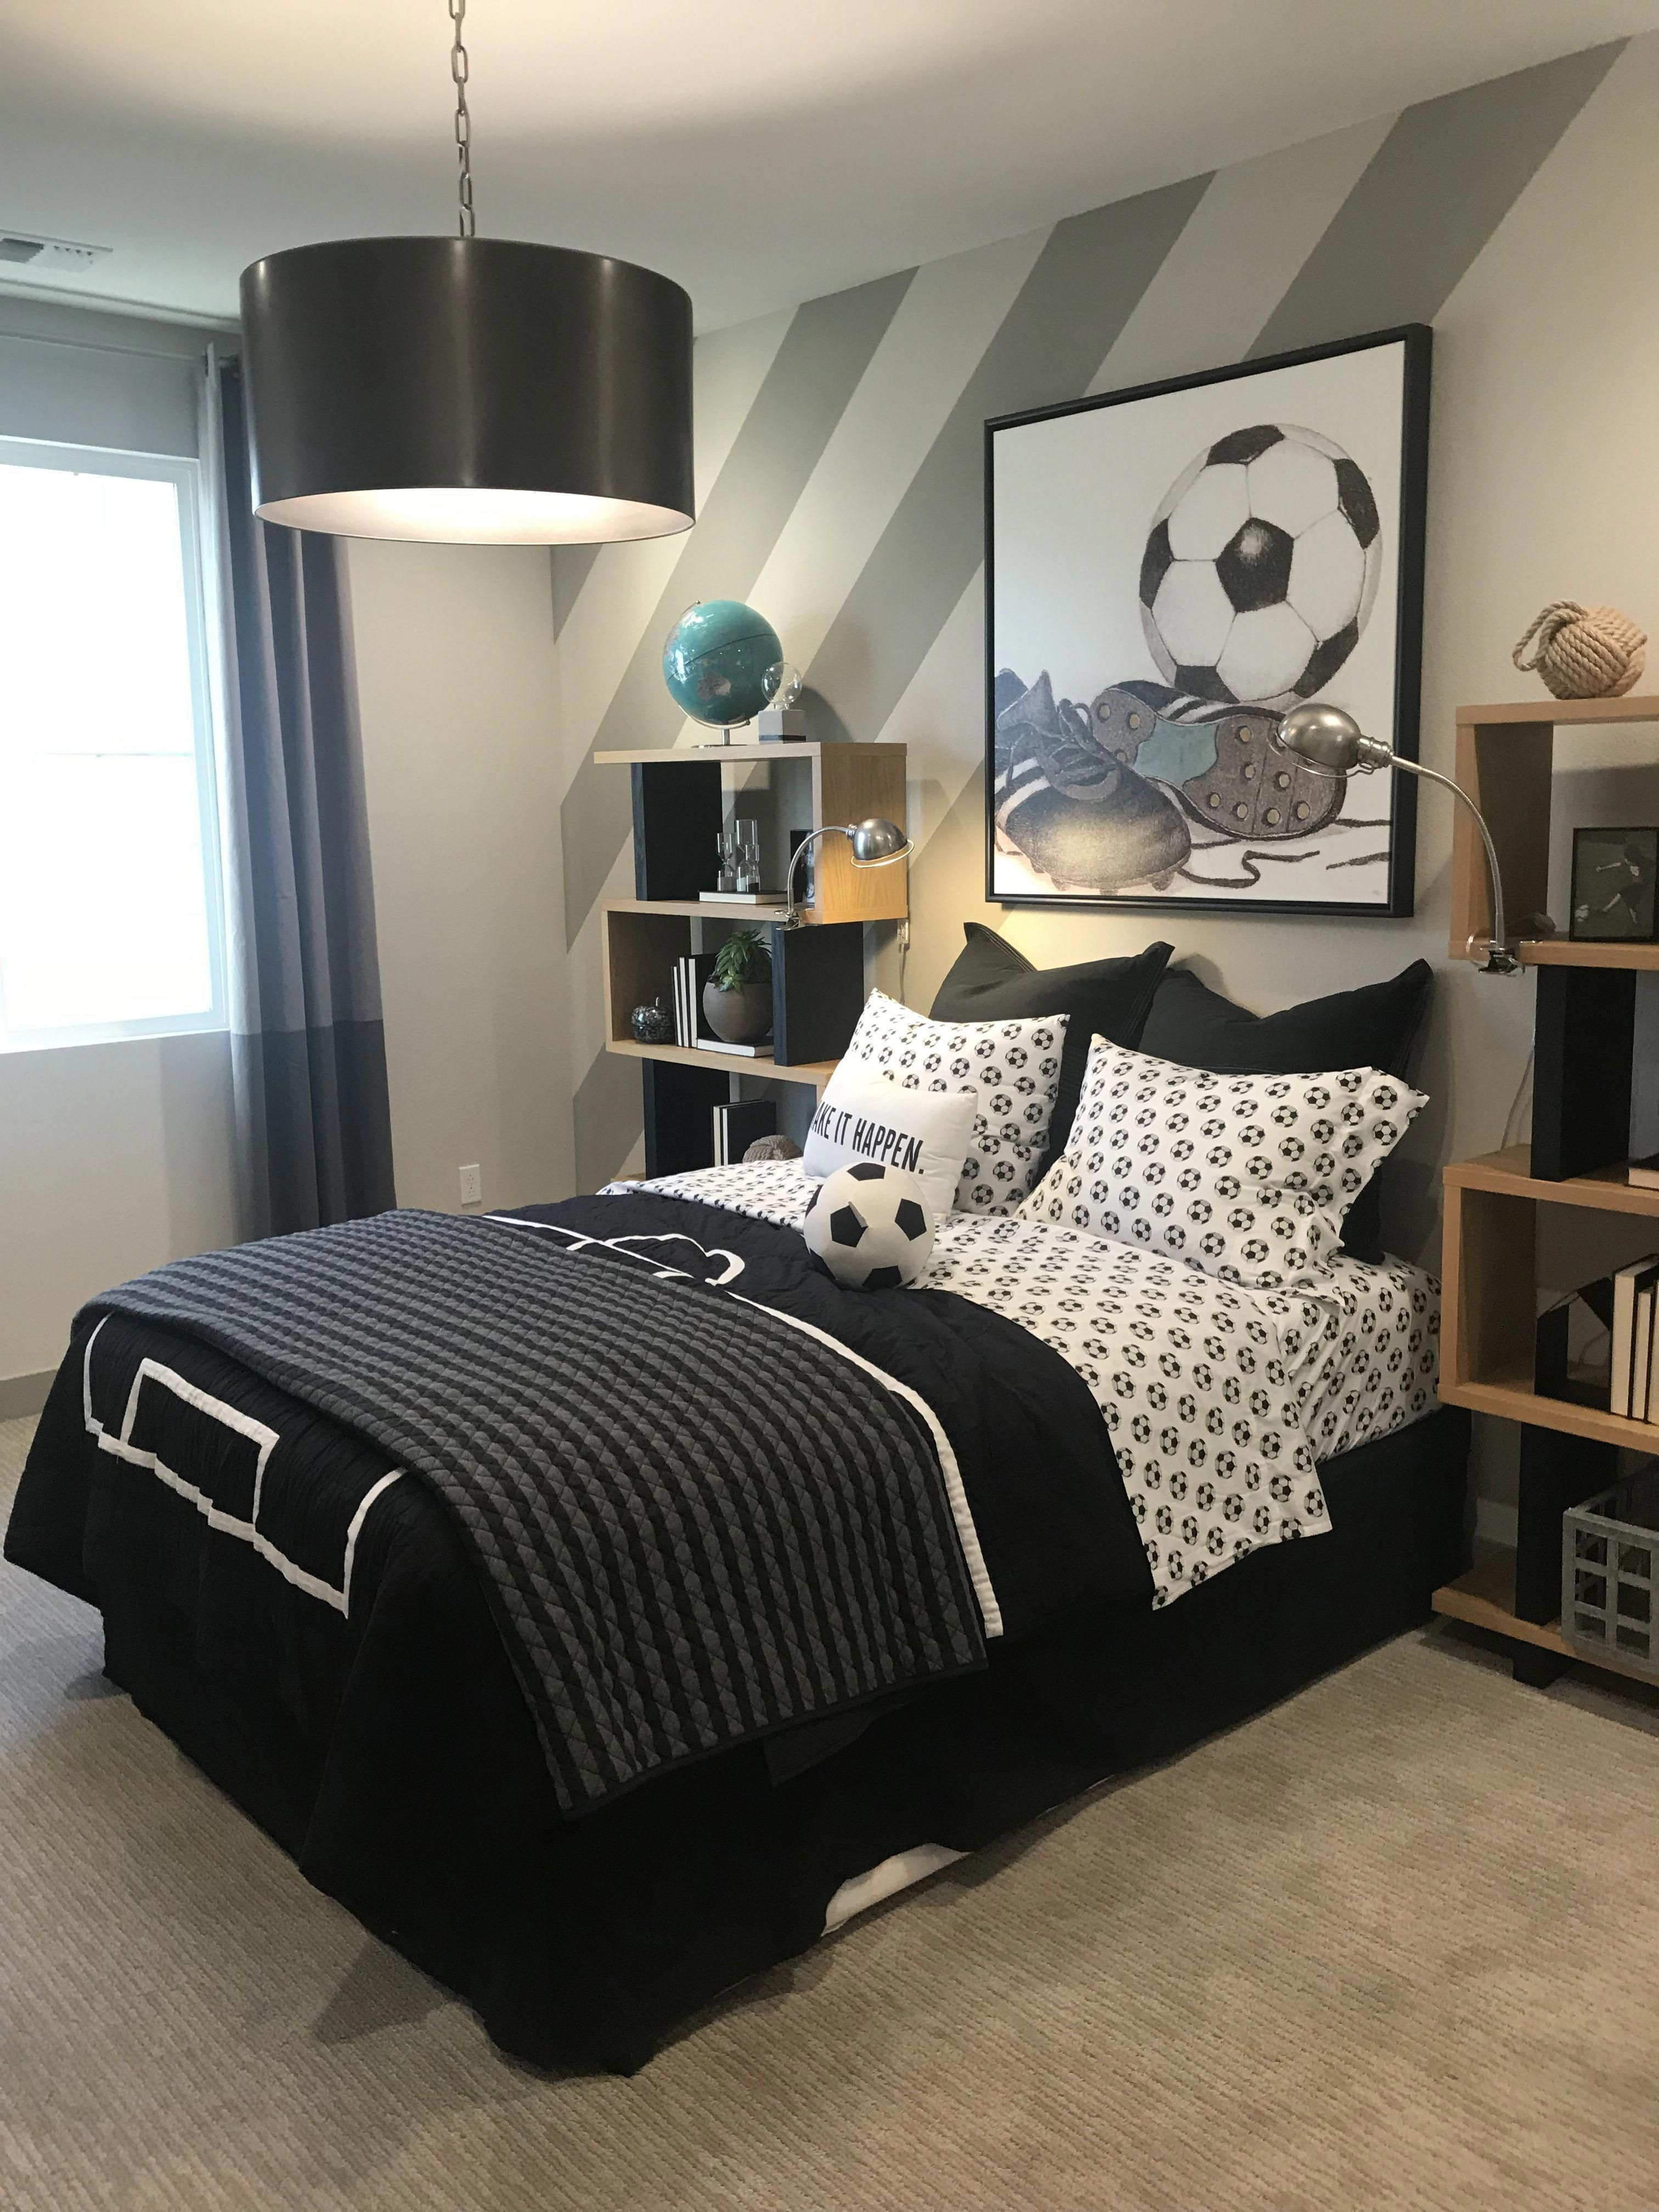 When I consider embellishing a kid's room tropically, I ... on Cool Bedroom Ideas For Teenage Guys  id=52809